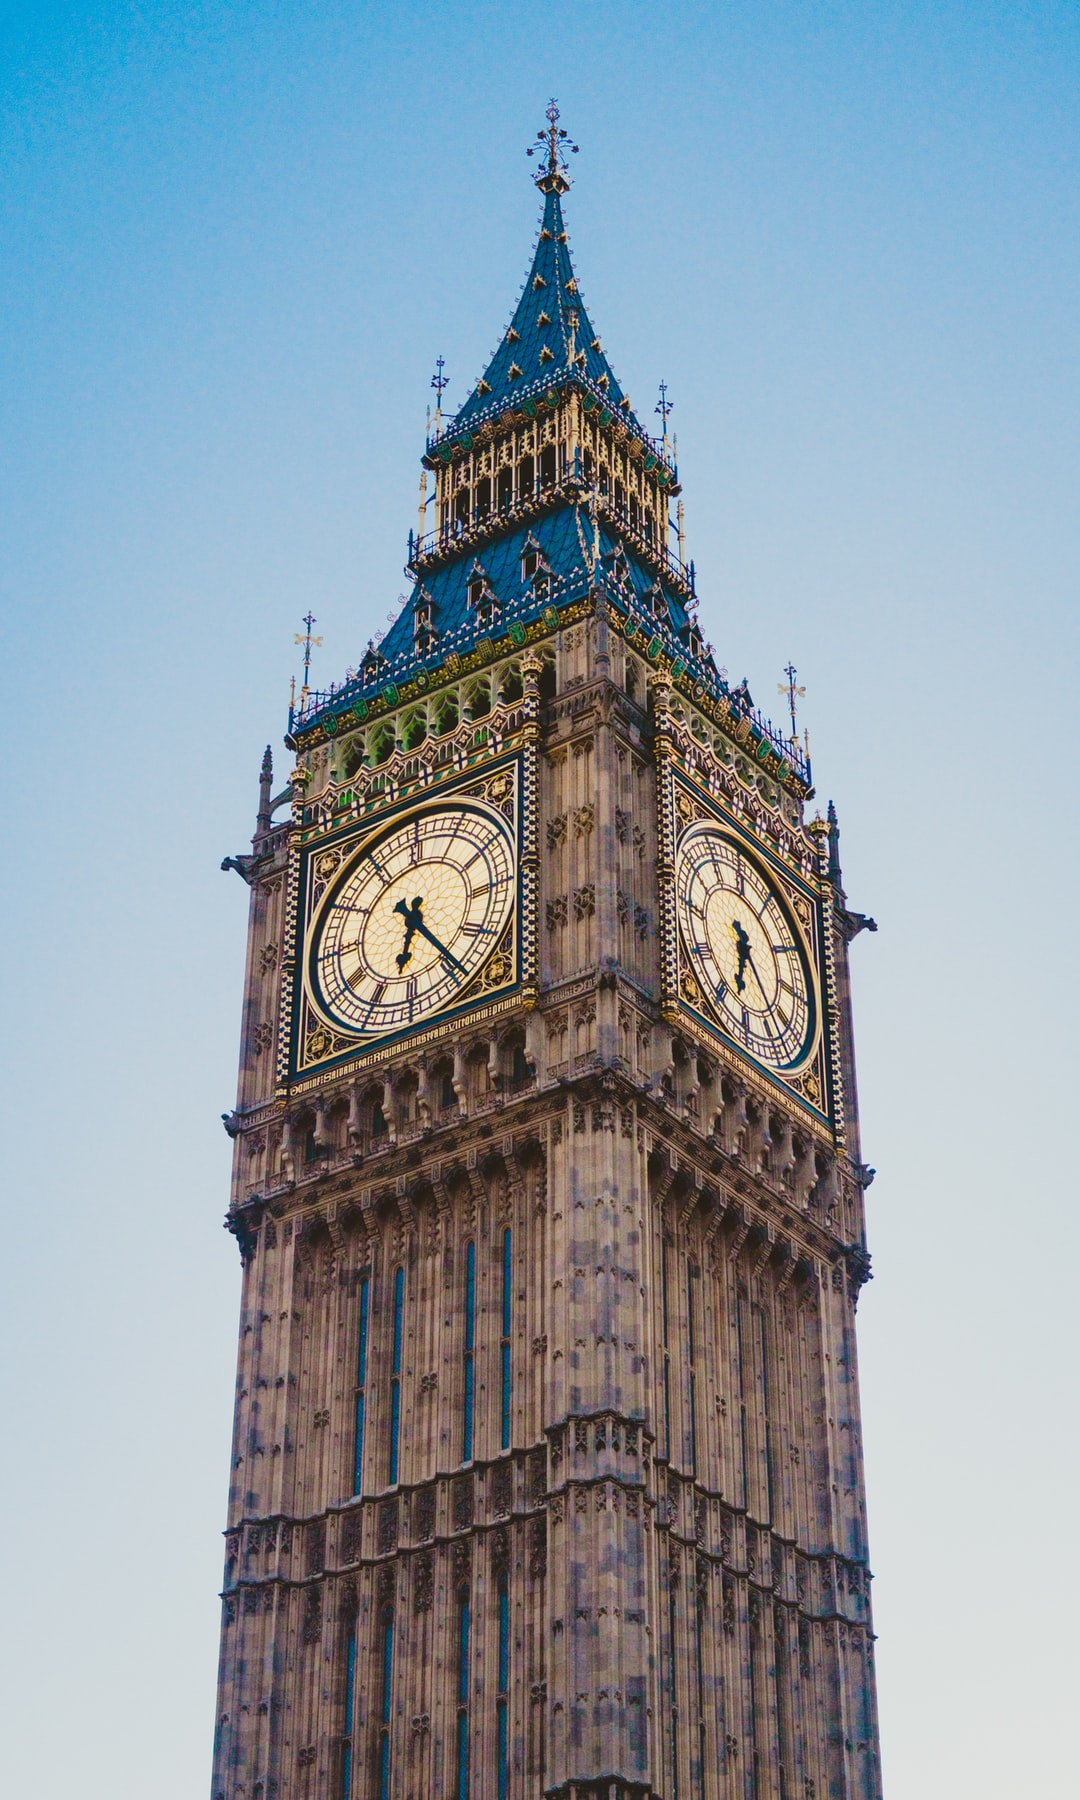 Up and close with Big Ben